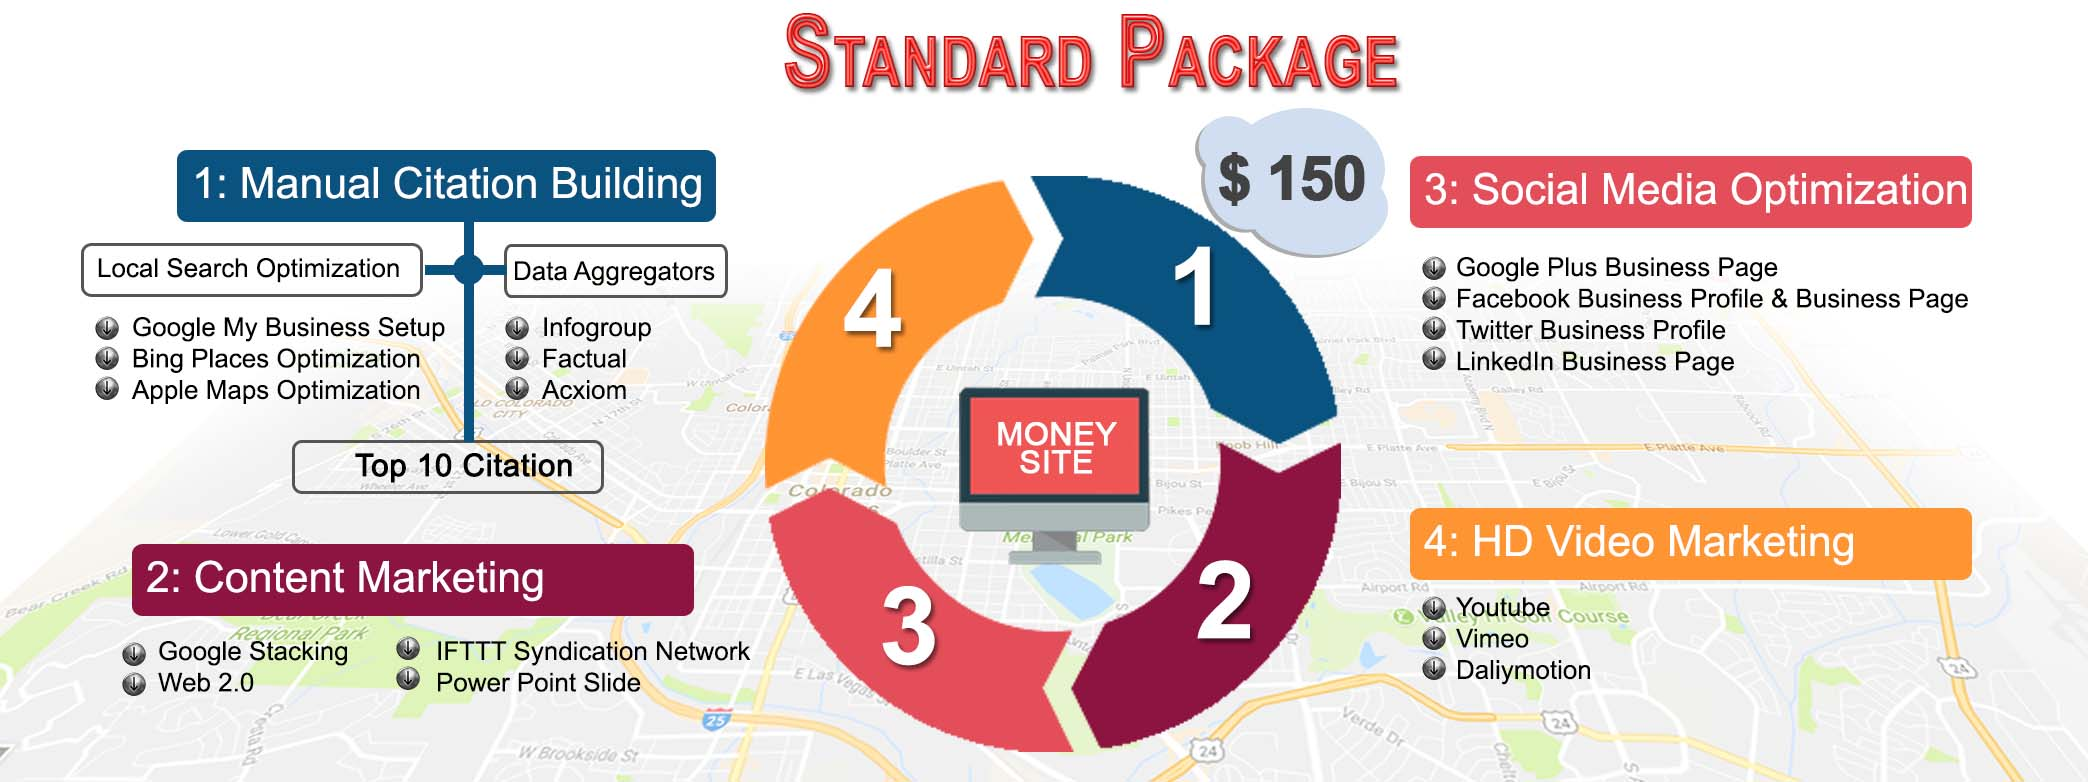 Standard Package - Aggressive Local SEO